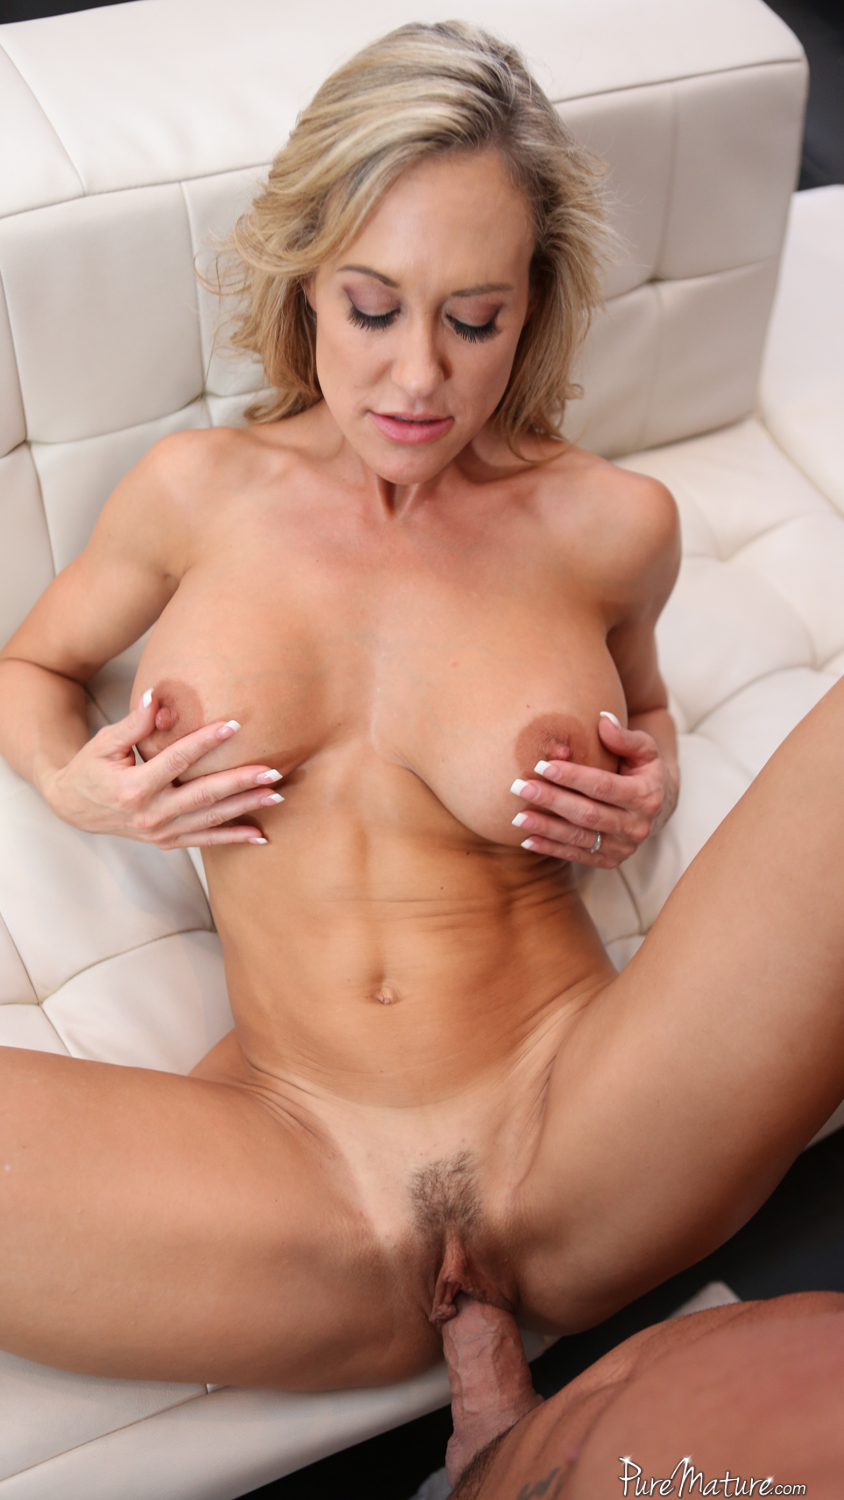 brandi love porn video